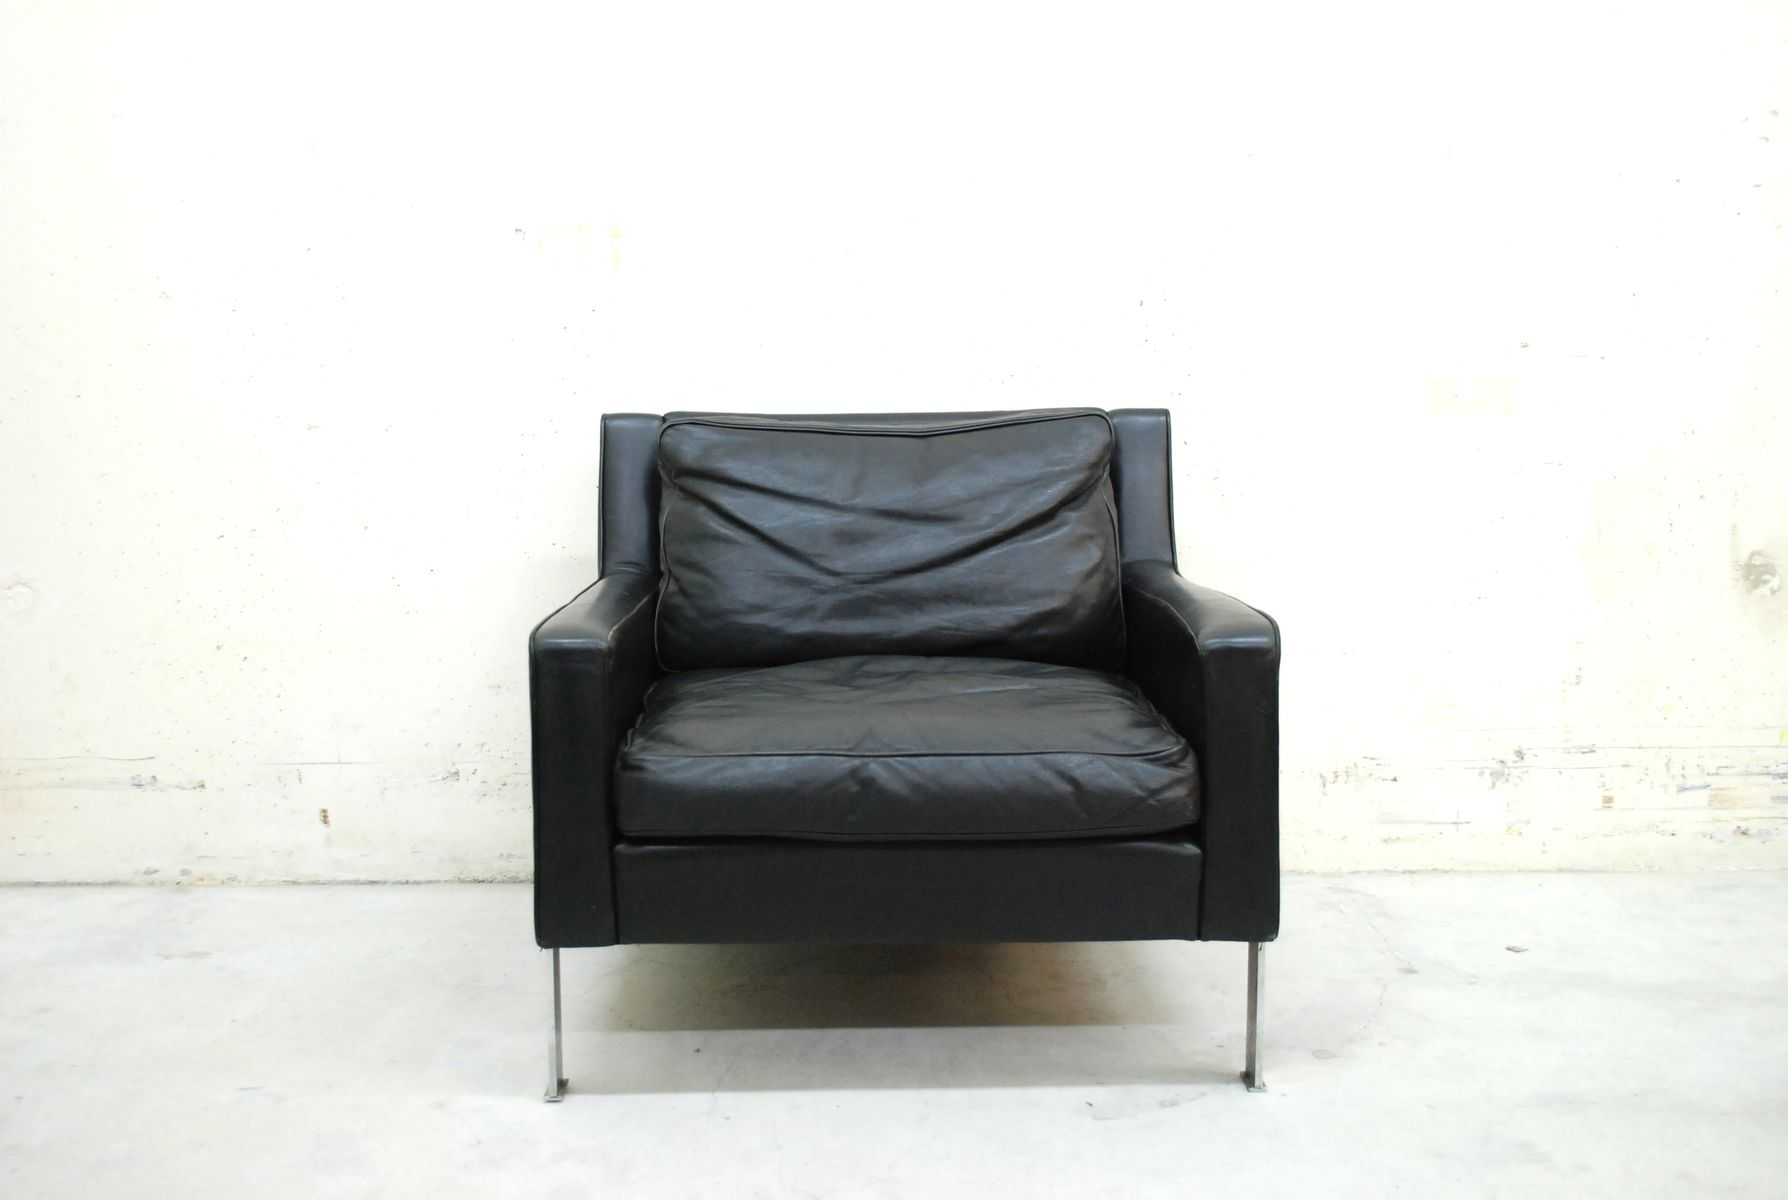 Vintage Armchairs By Hans Könecke For Tecta, Set Of 2 For Sale At Pamono